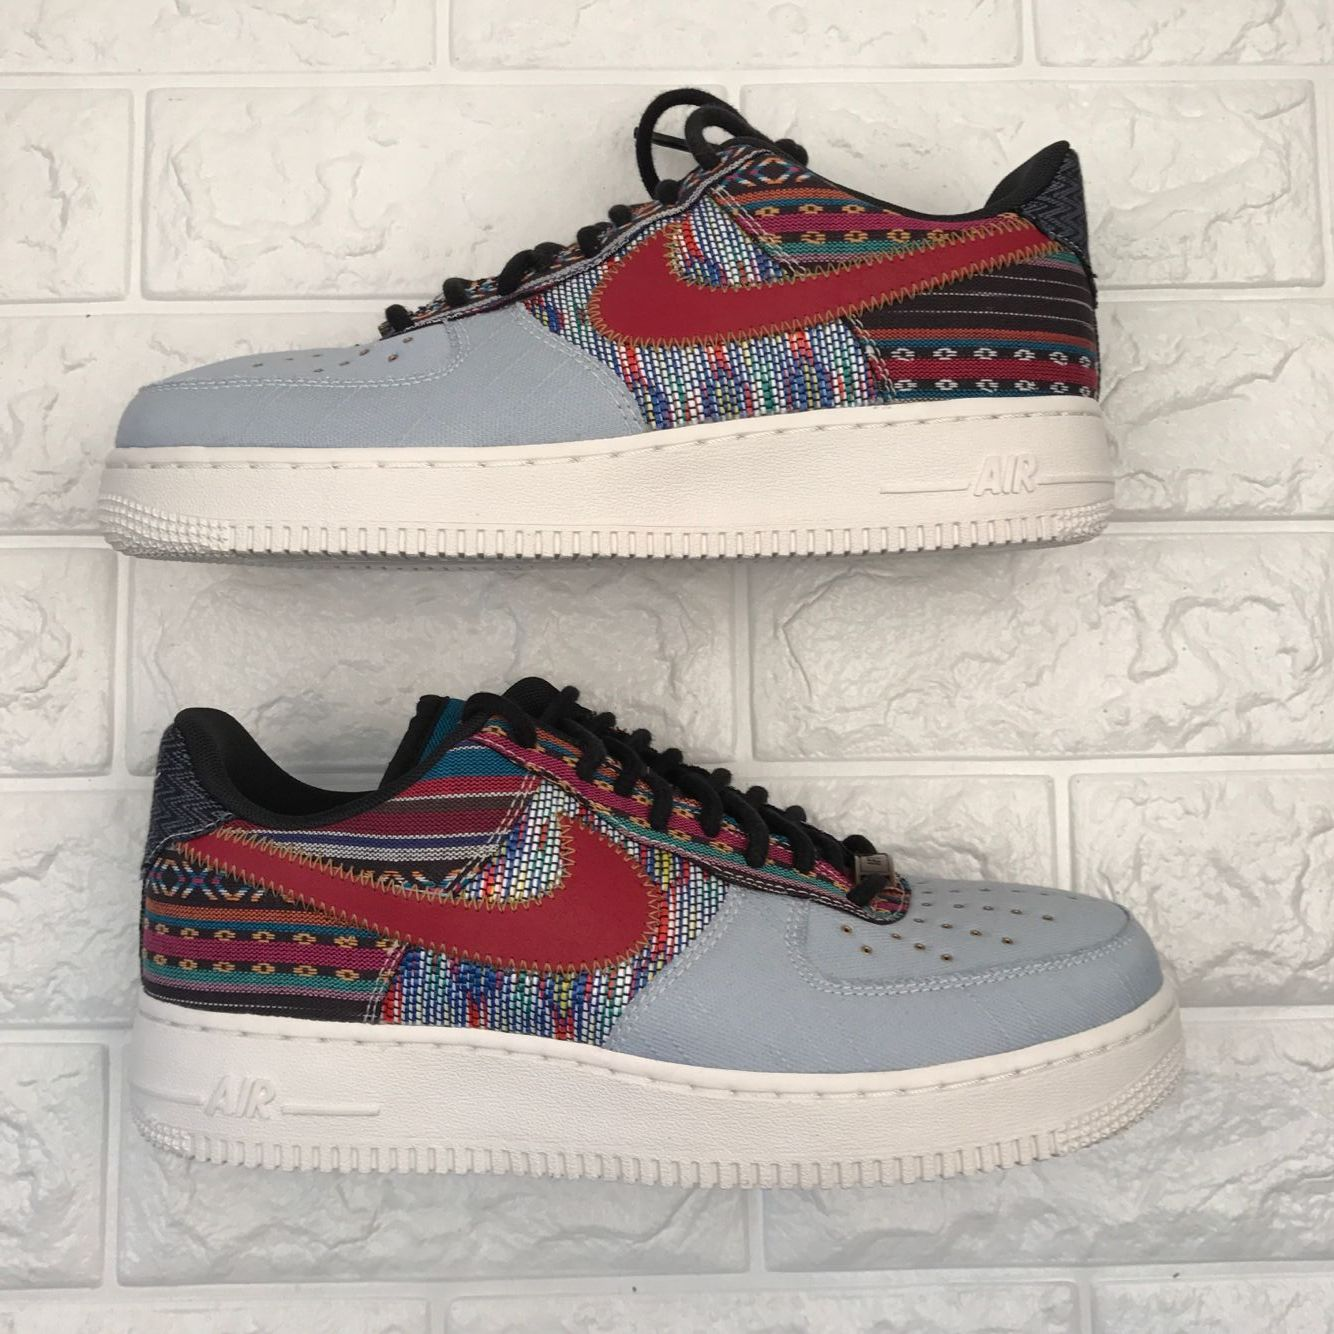 NIKE AIR FORCE 1 LOW 07 LV8 ARMORY BLUE GYM RED 823511 401 #nike #